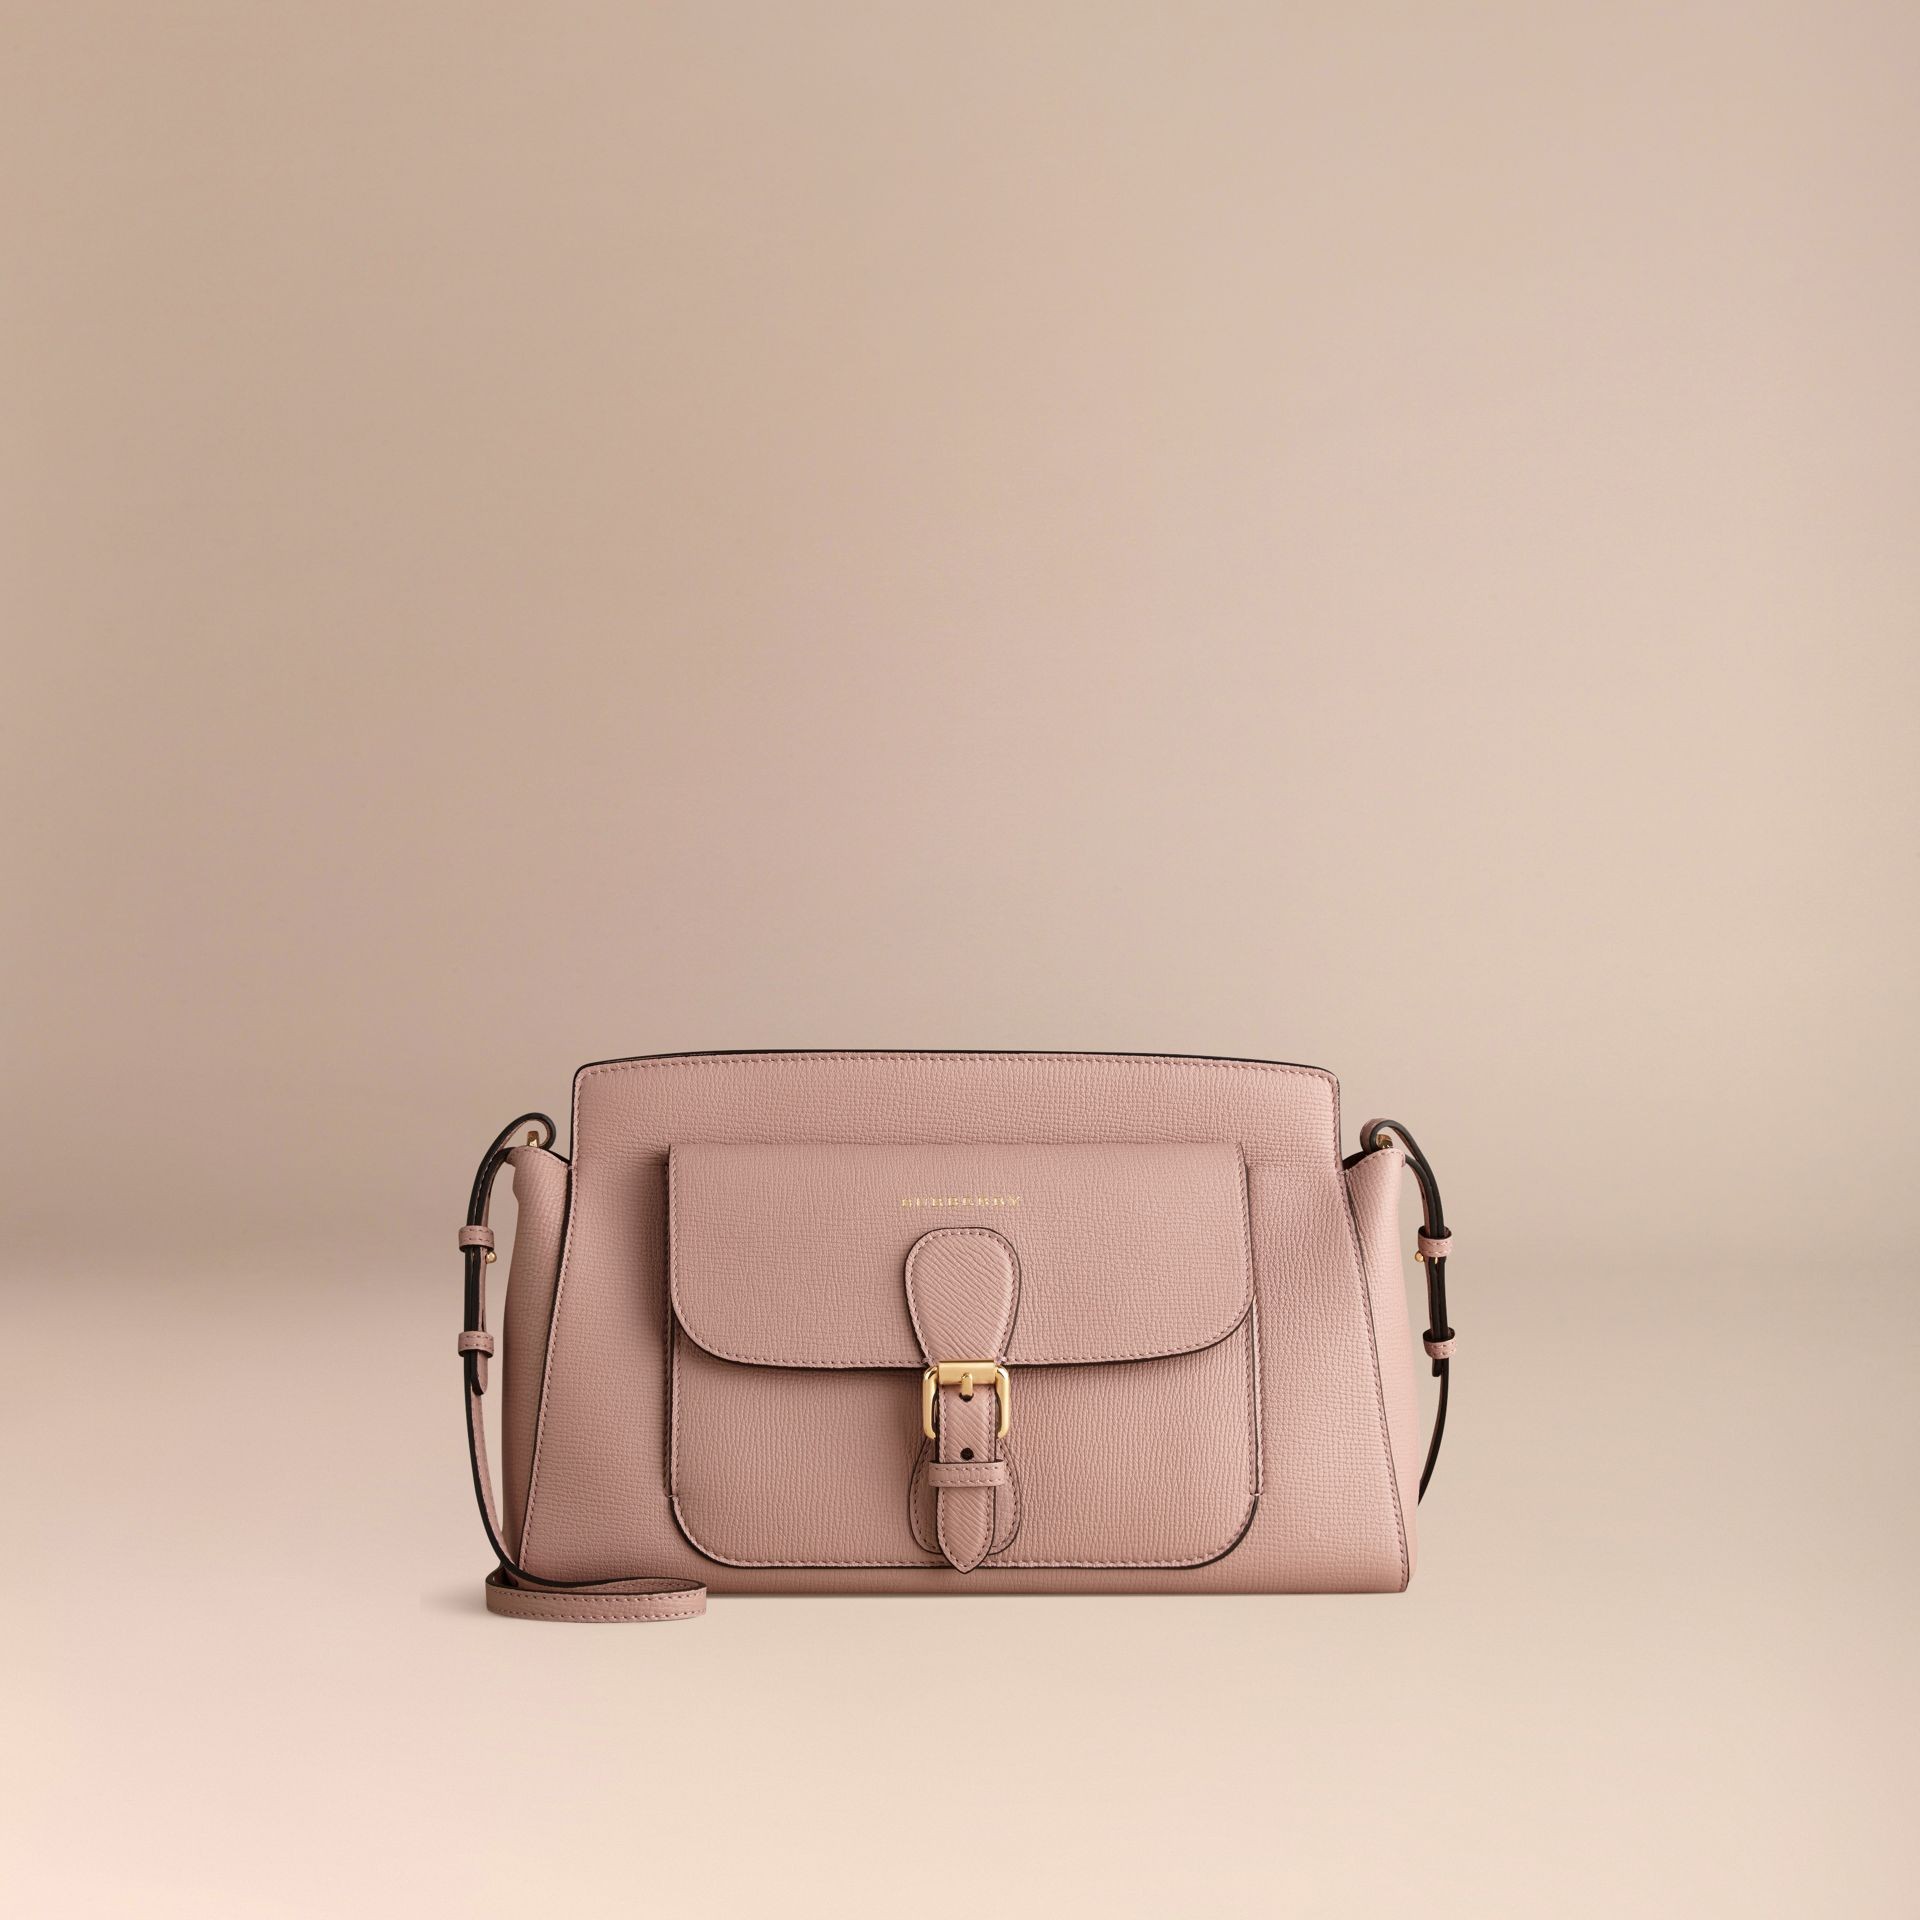 Pale orchid The Saddle Clutch in Grainy Bonded Leather Pale Orchid - gallery image 7